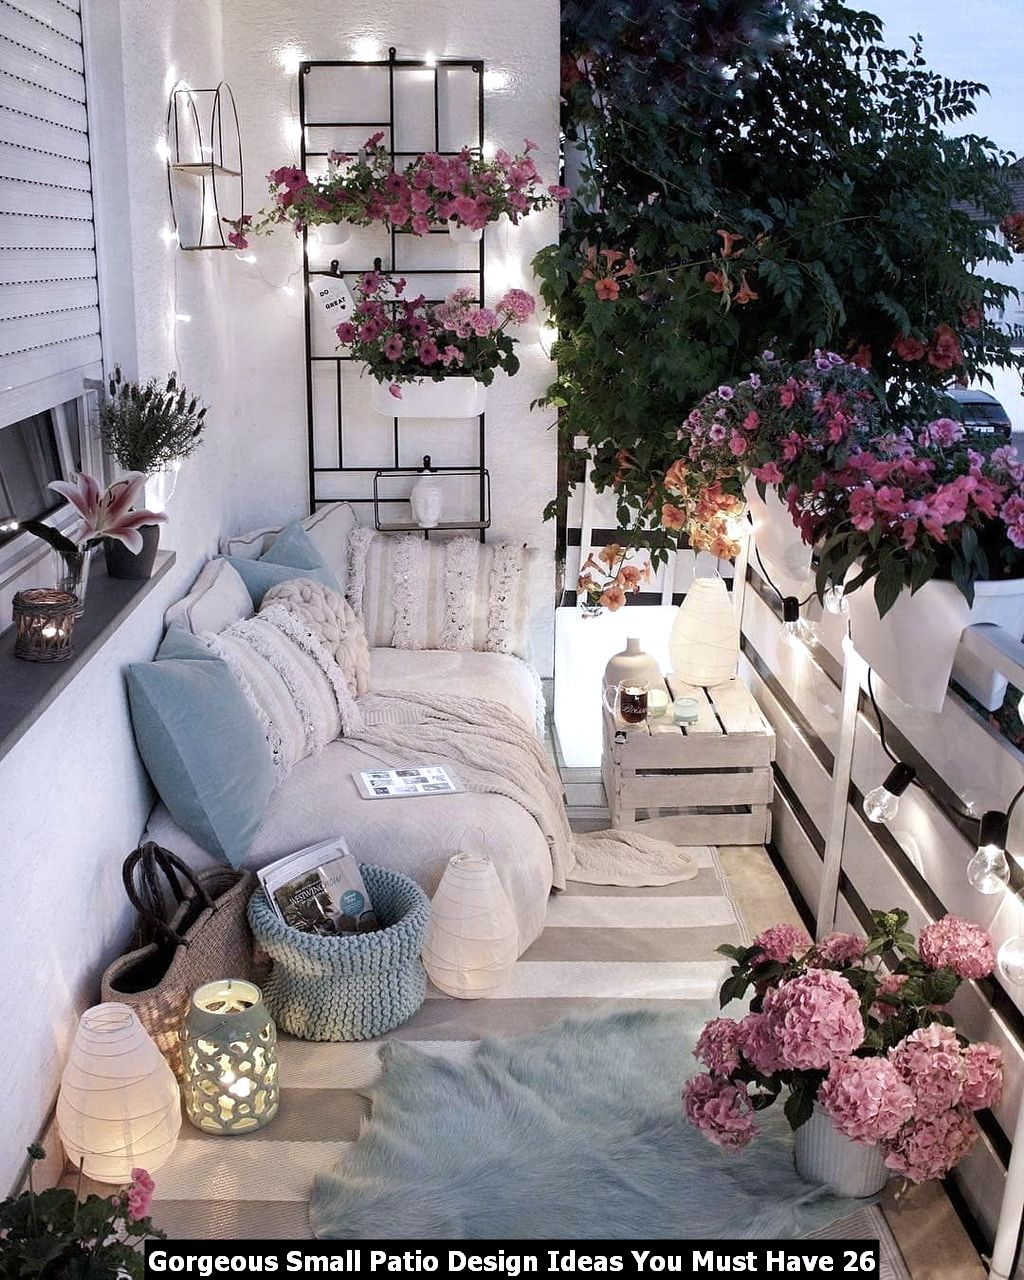 Gorgeous Small Patio Design Ideas You Must Have 26